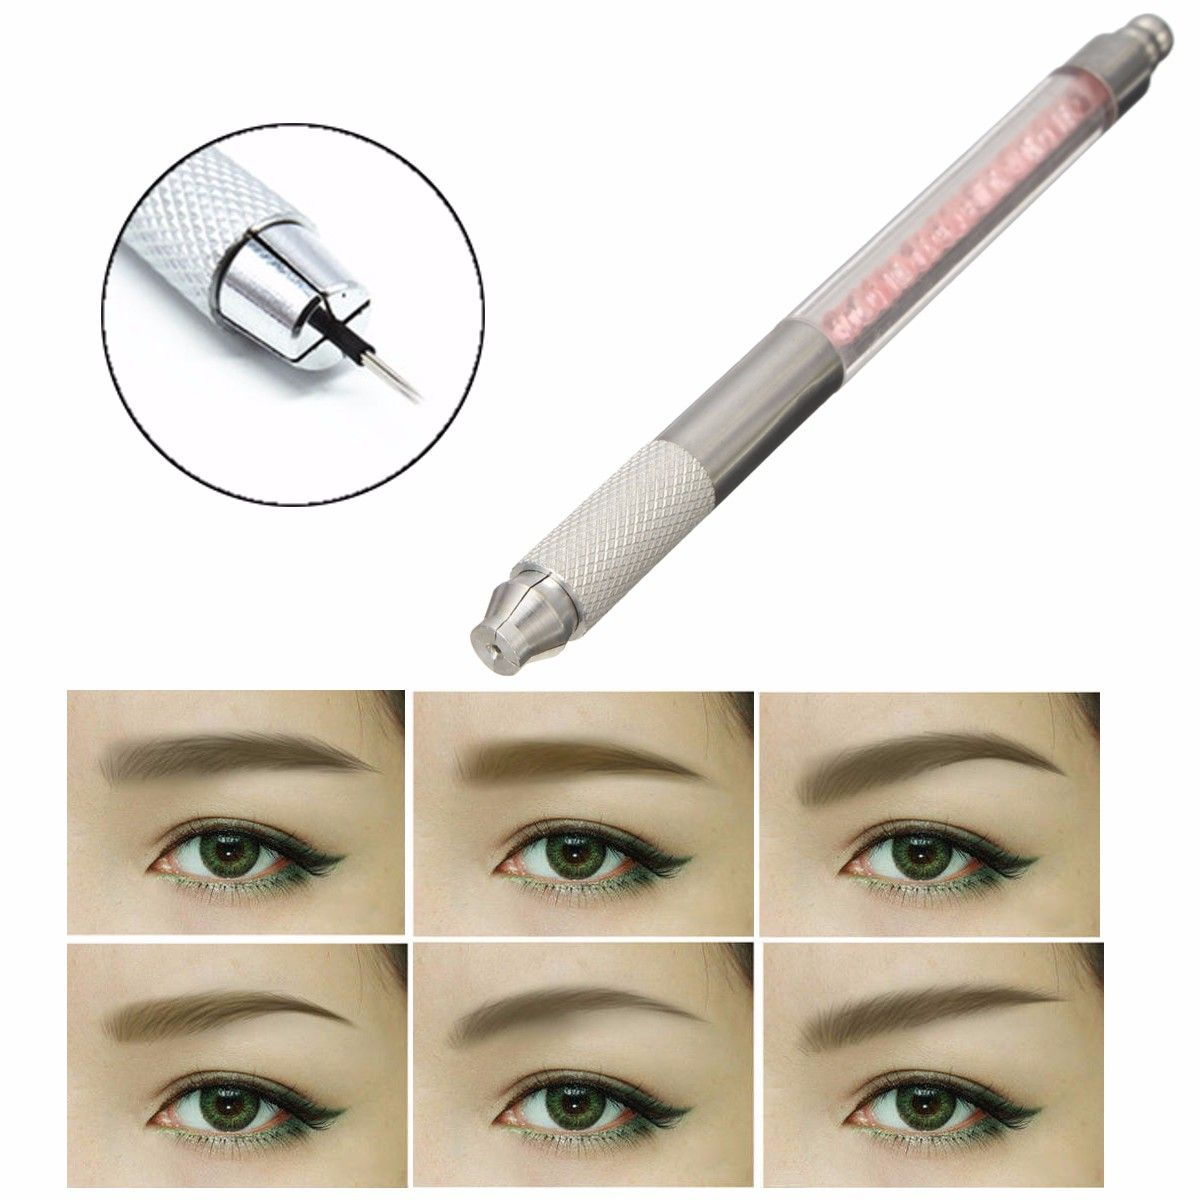 Semipermanent Eyebrow Eyeliner Tattoo Pen Liner